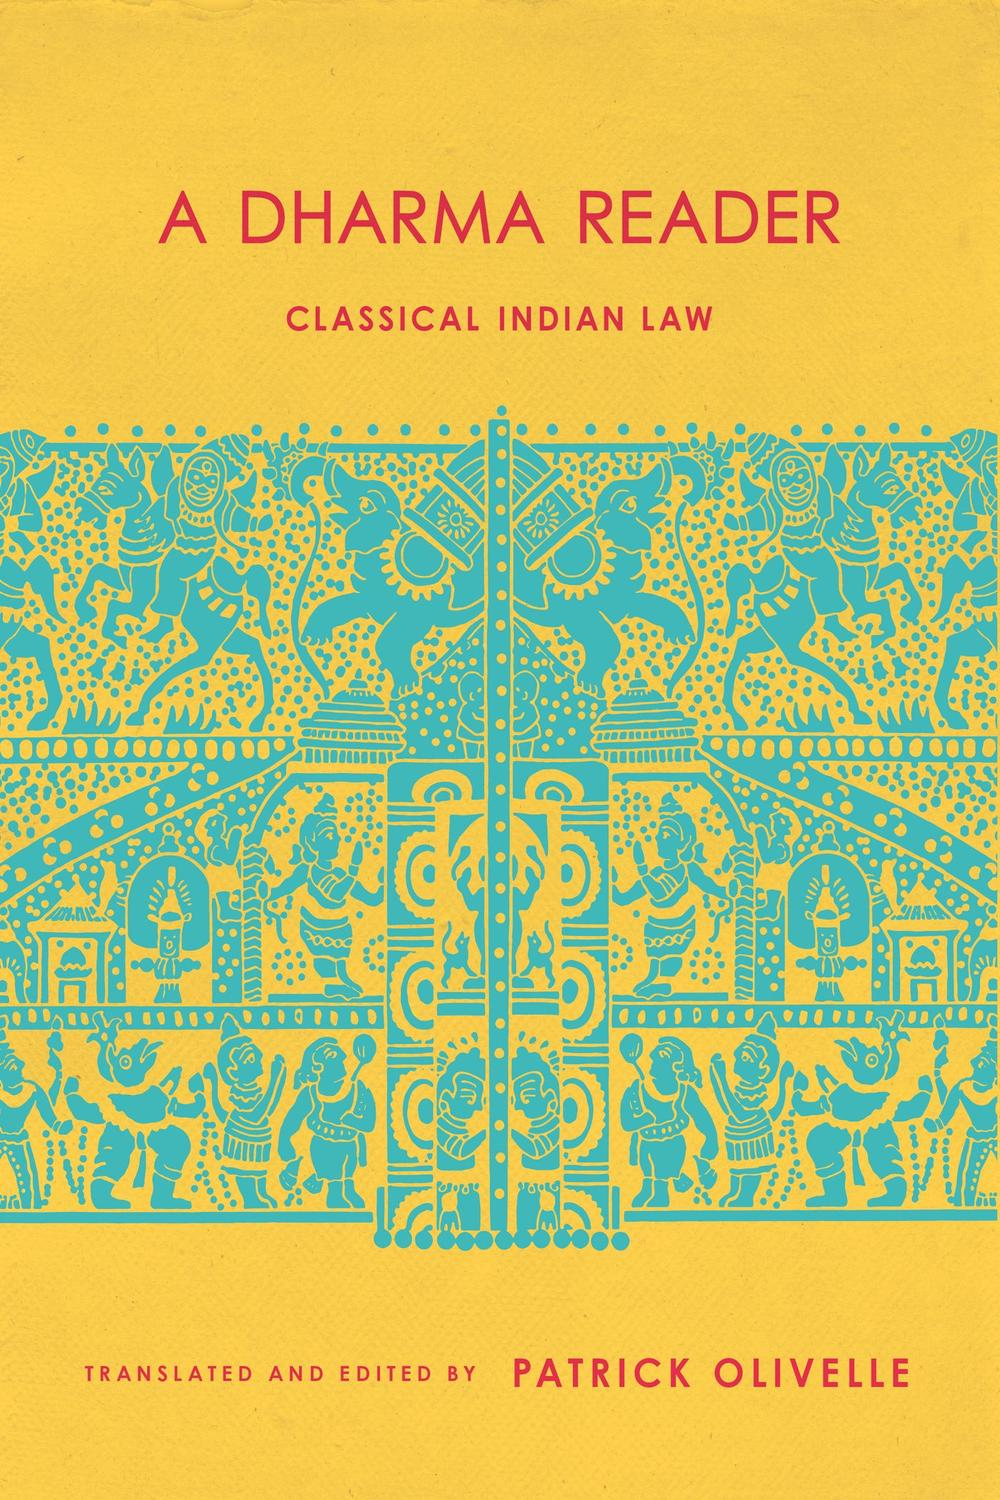 A Dharma Reader: Classical Indian Law (Historical Sourcebooks in Classical Indian Thought)